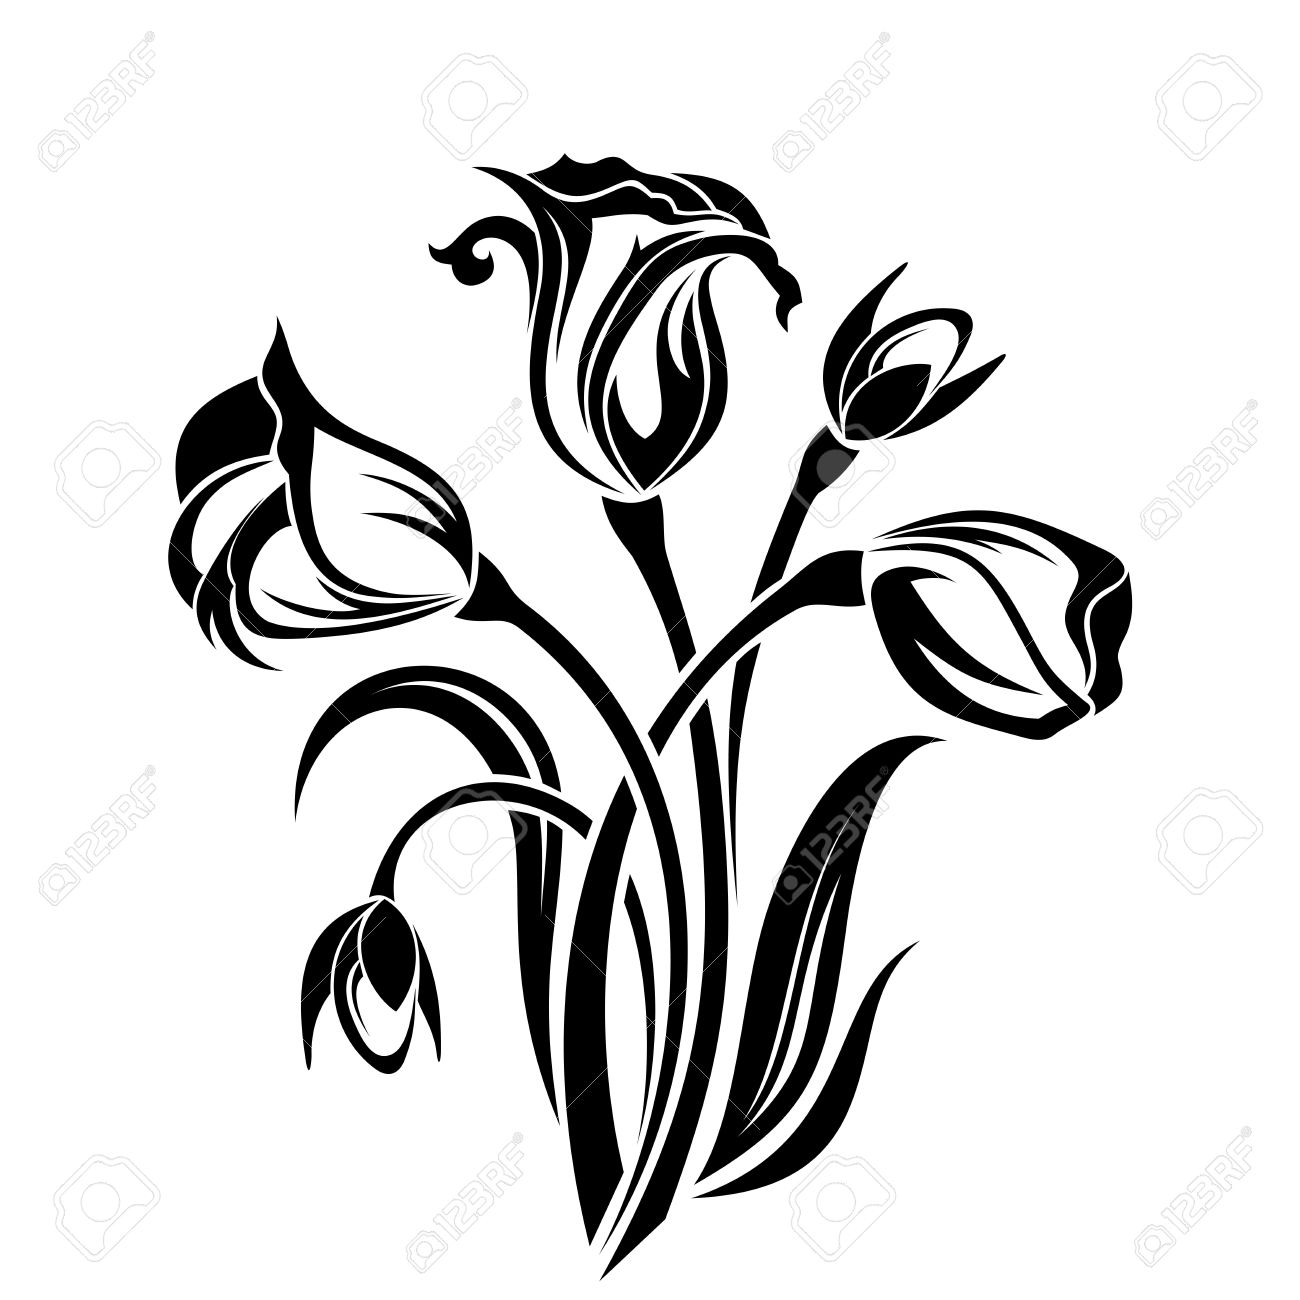 1300x1300 Black Silhouette Of Flowers Vector Illustration Royalty Free